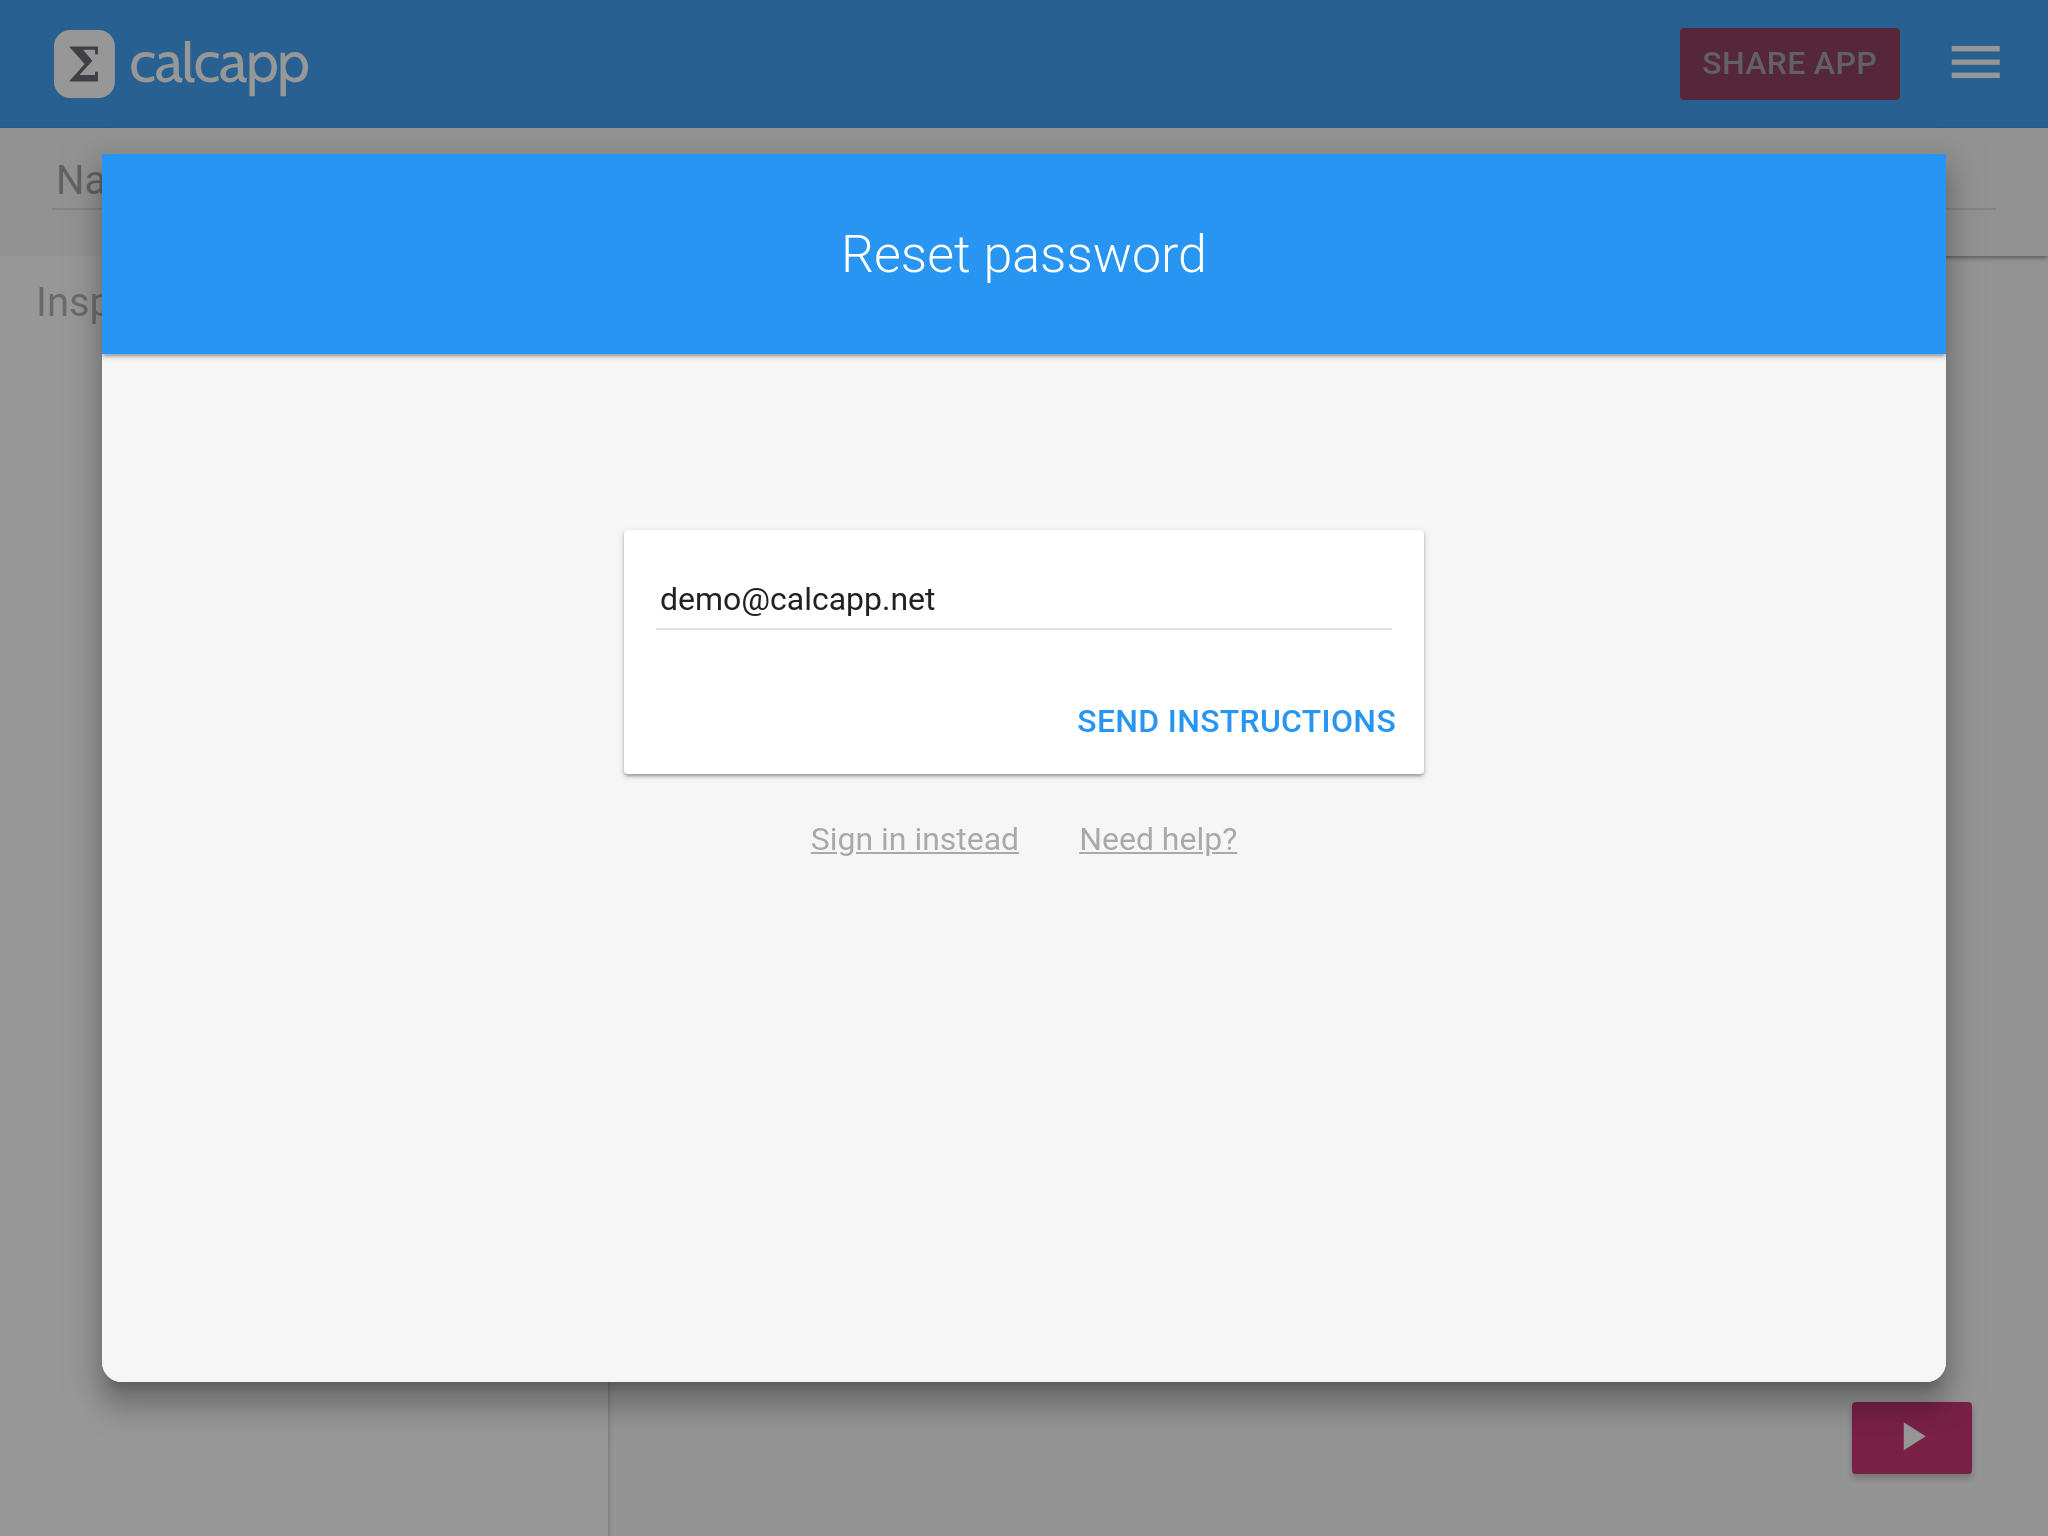 The password reset screen